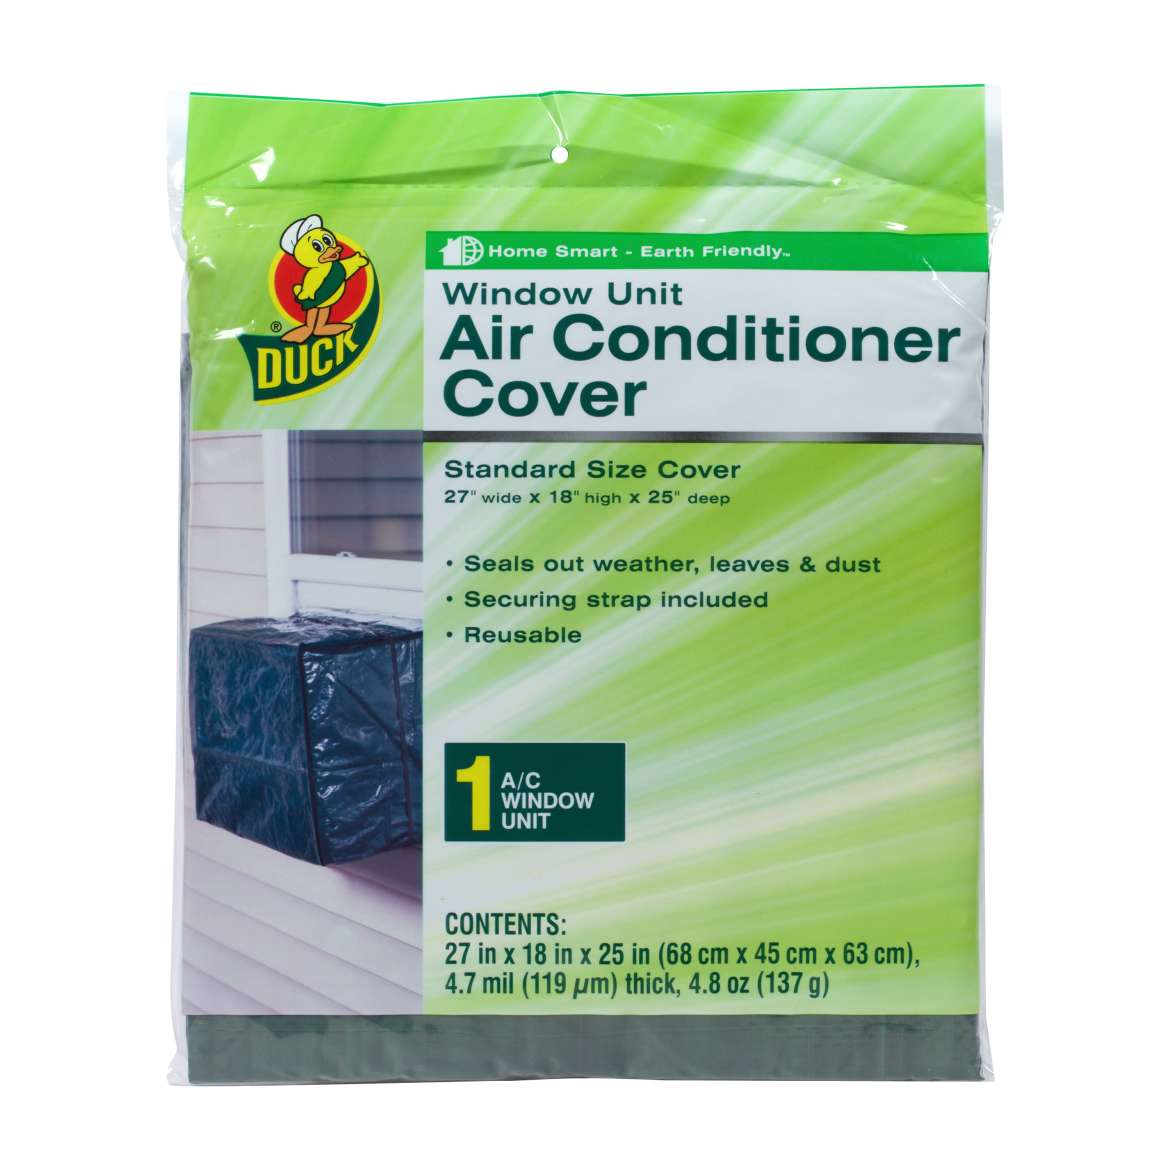 Duck® Brand Window Air Conditioner Cover, Outdoor - 27 in. x 18 in. x 25 in. Image